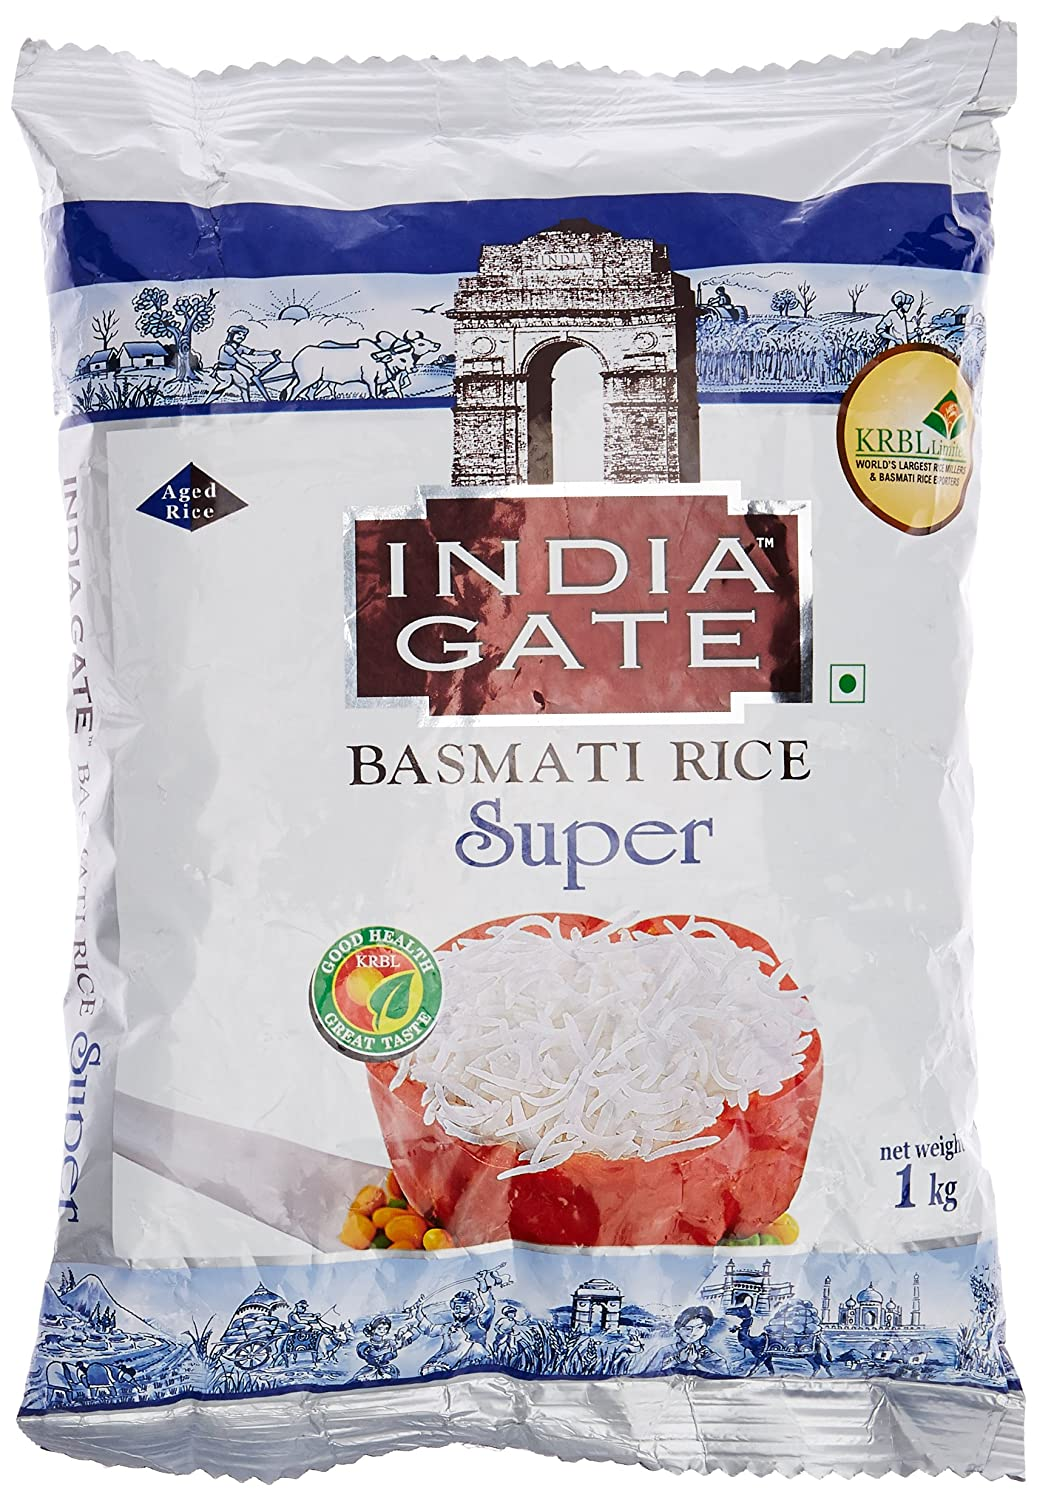 India Gate Basmati Rice Super, 1kg: Amazon.in: Grocery & Gourmet Foods